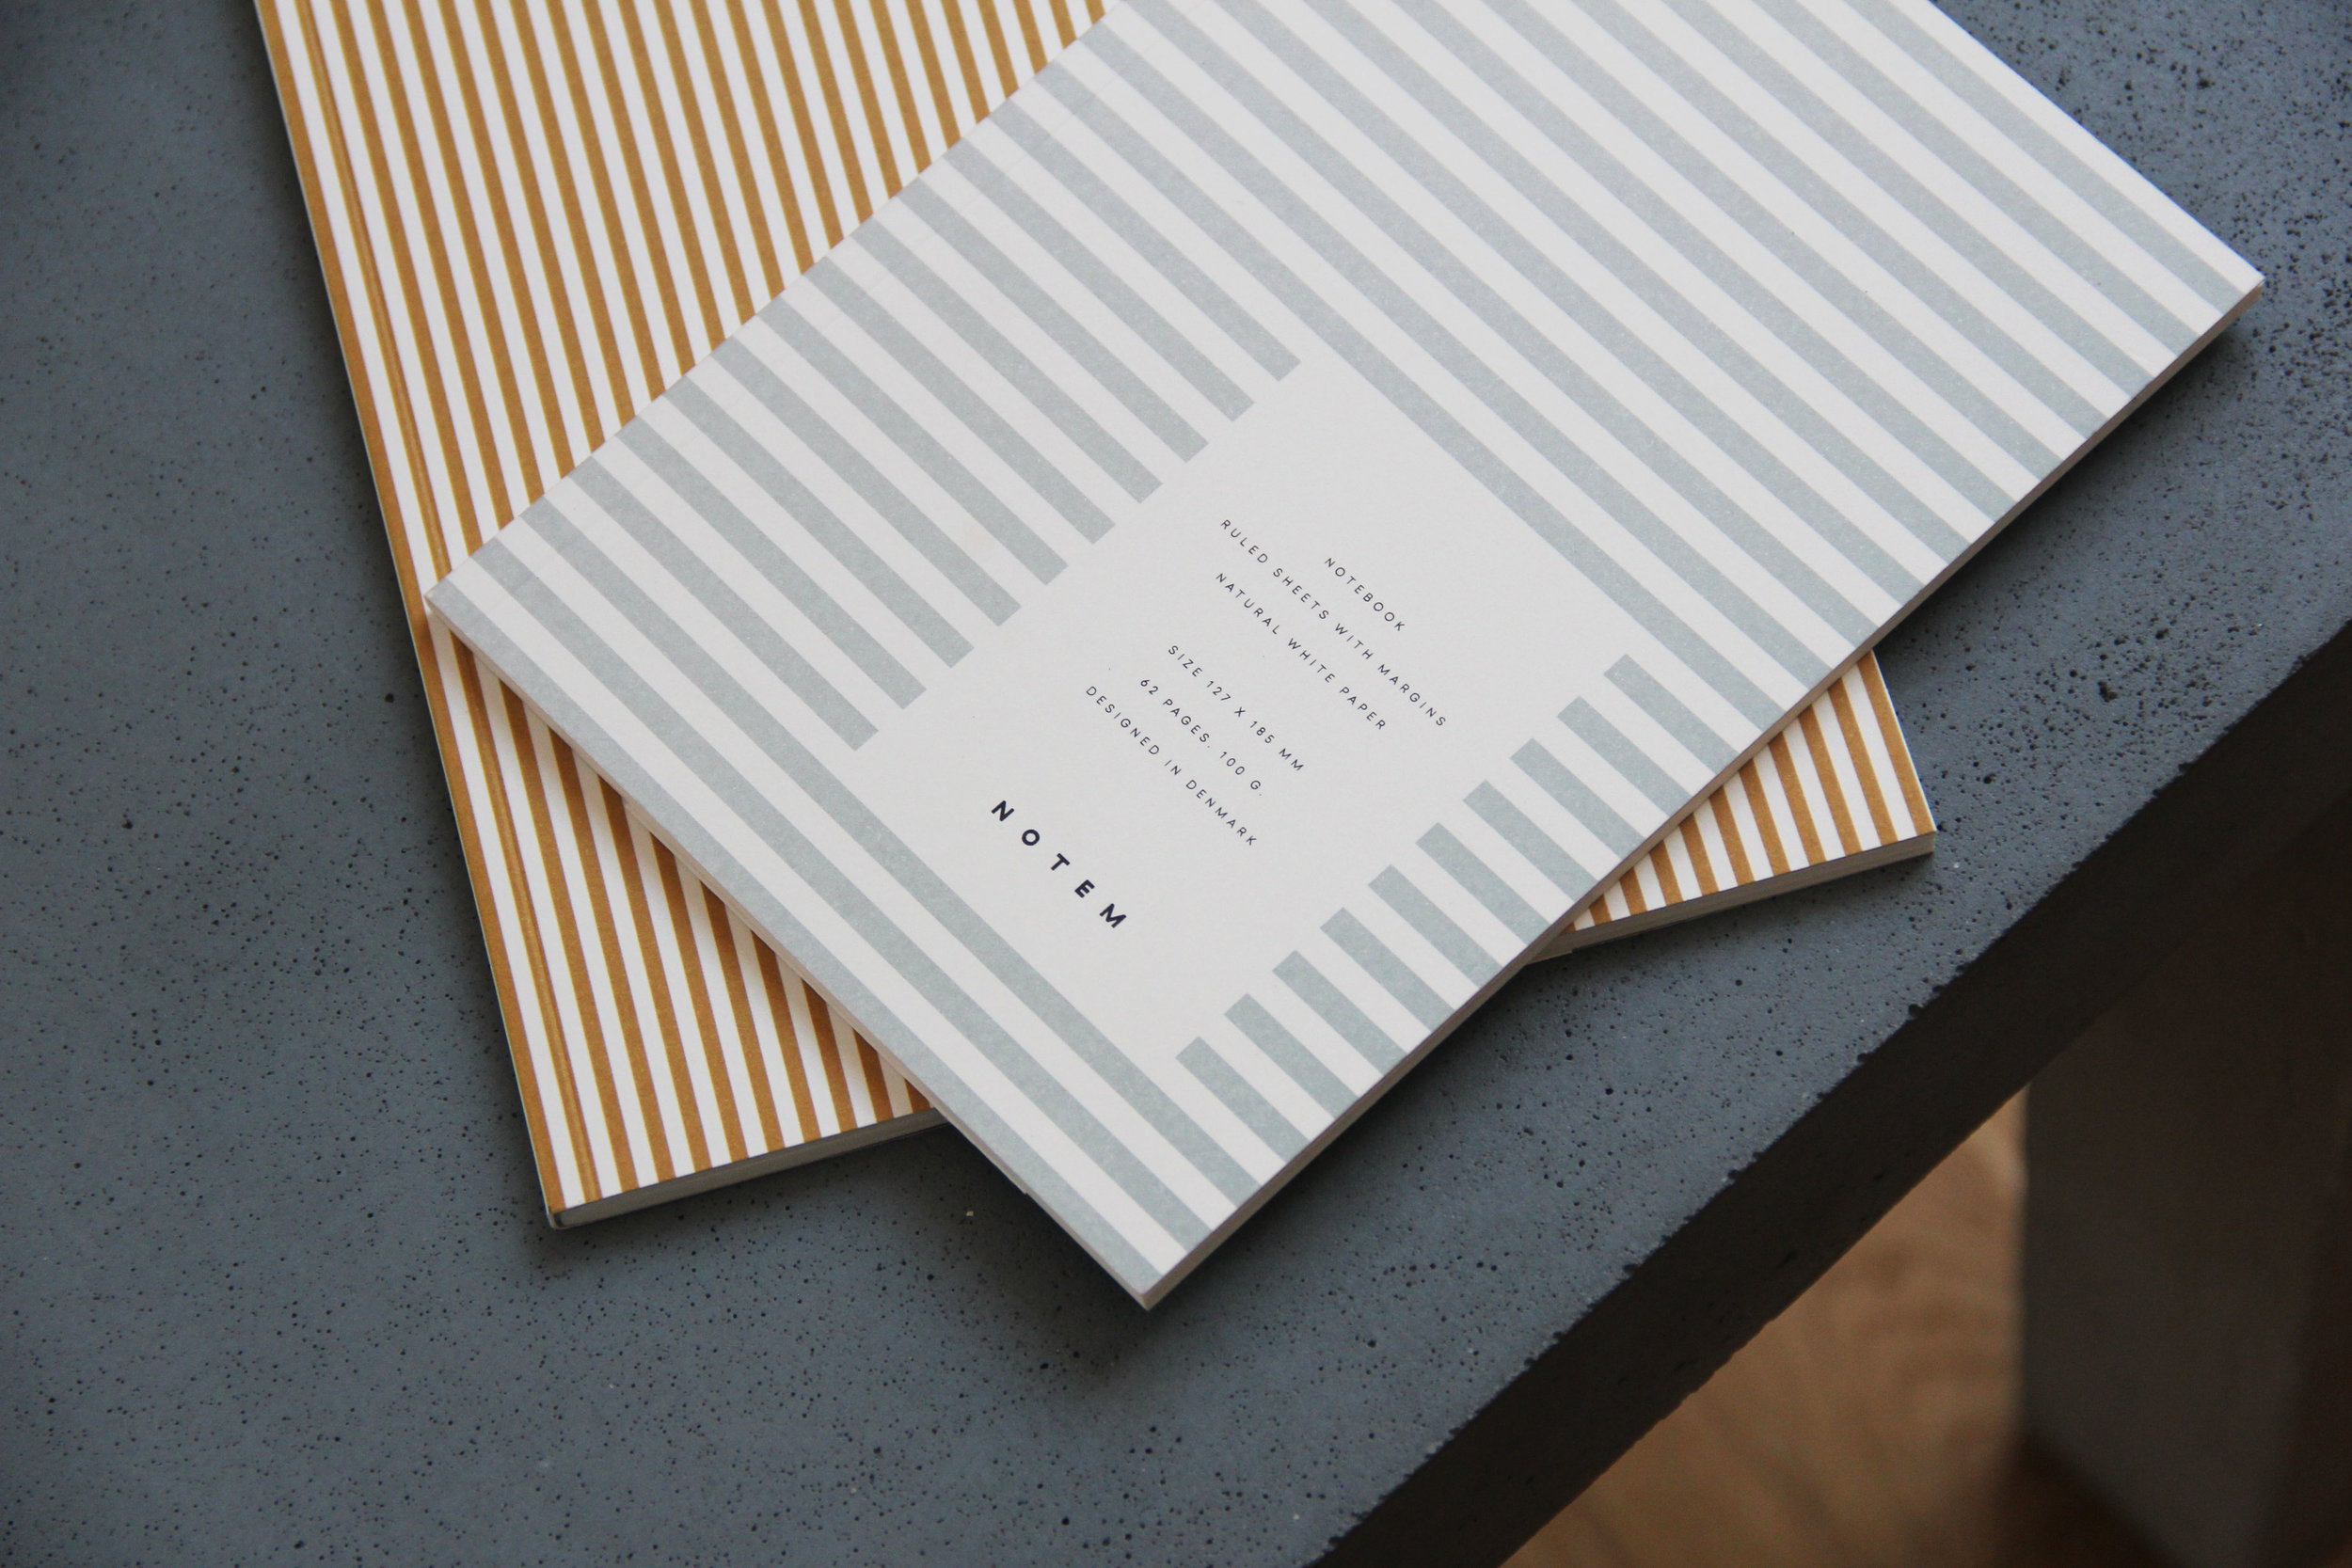 notebooks - New arrivals